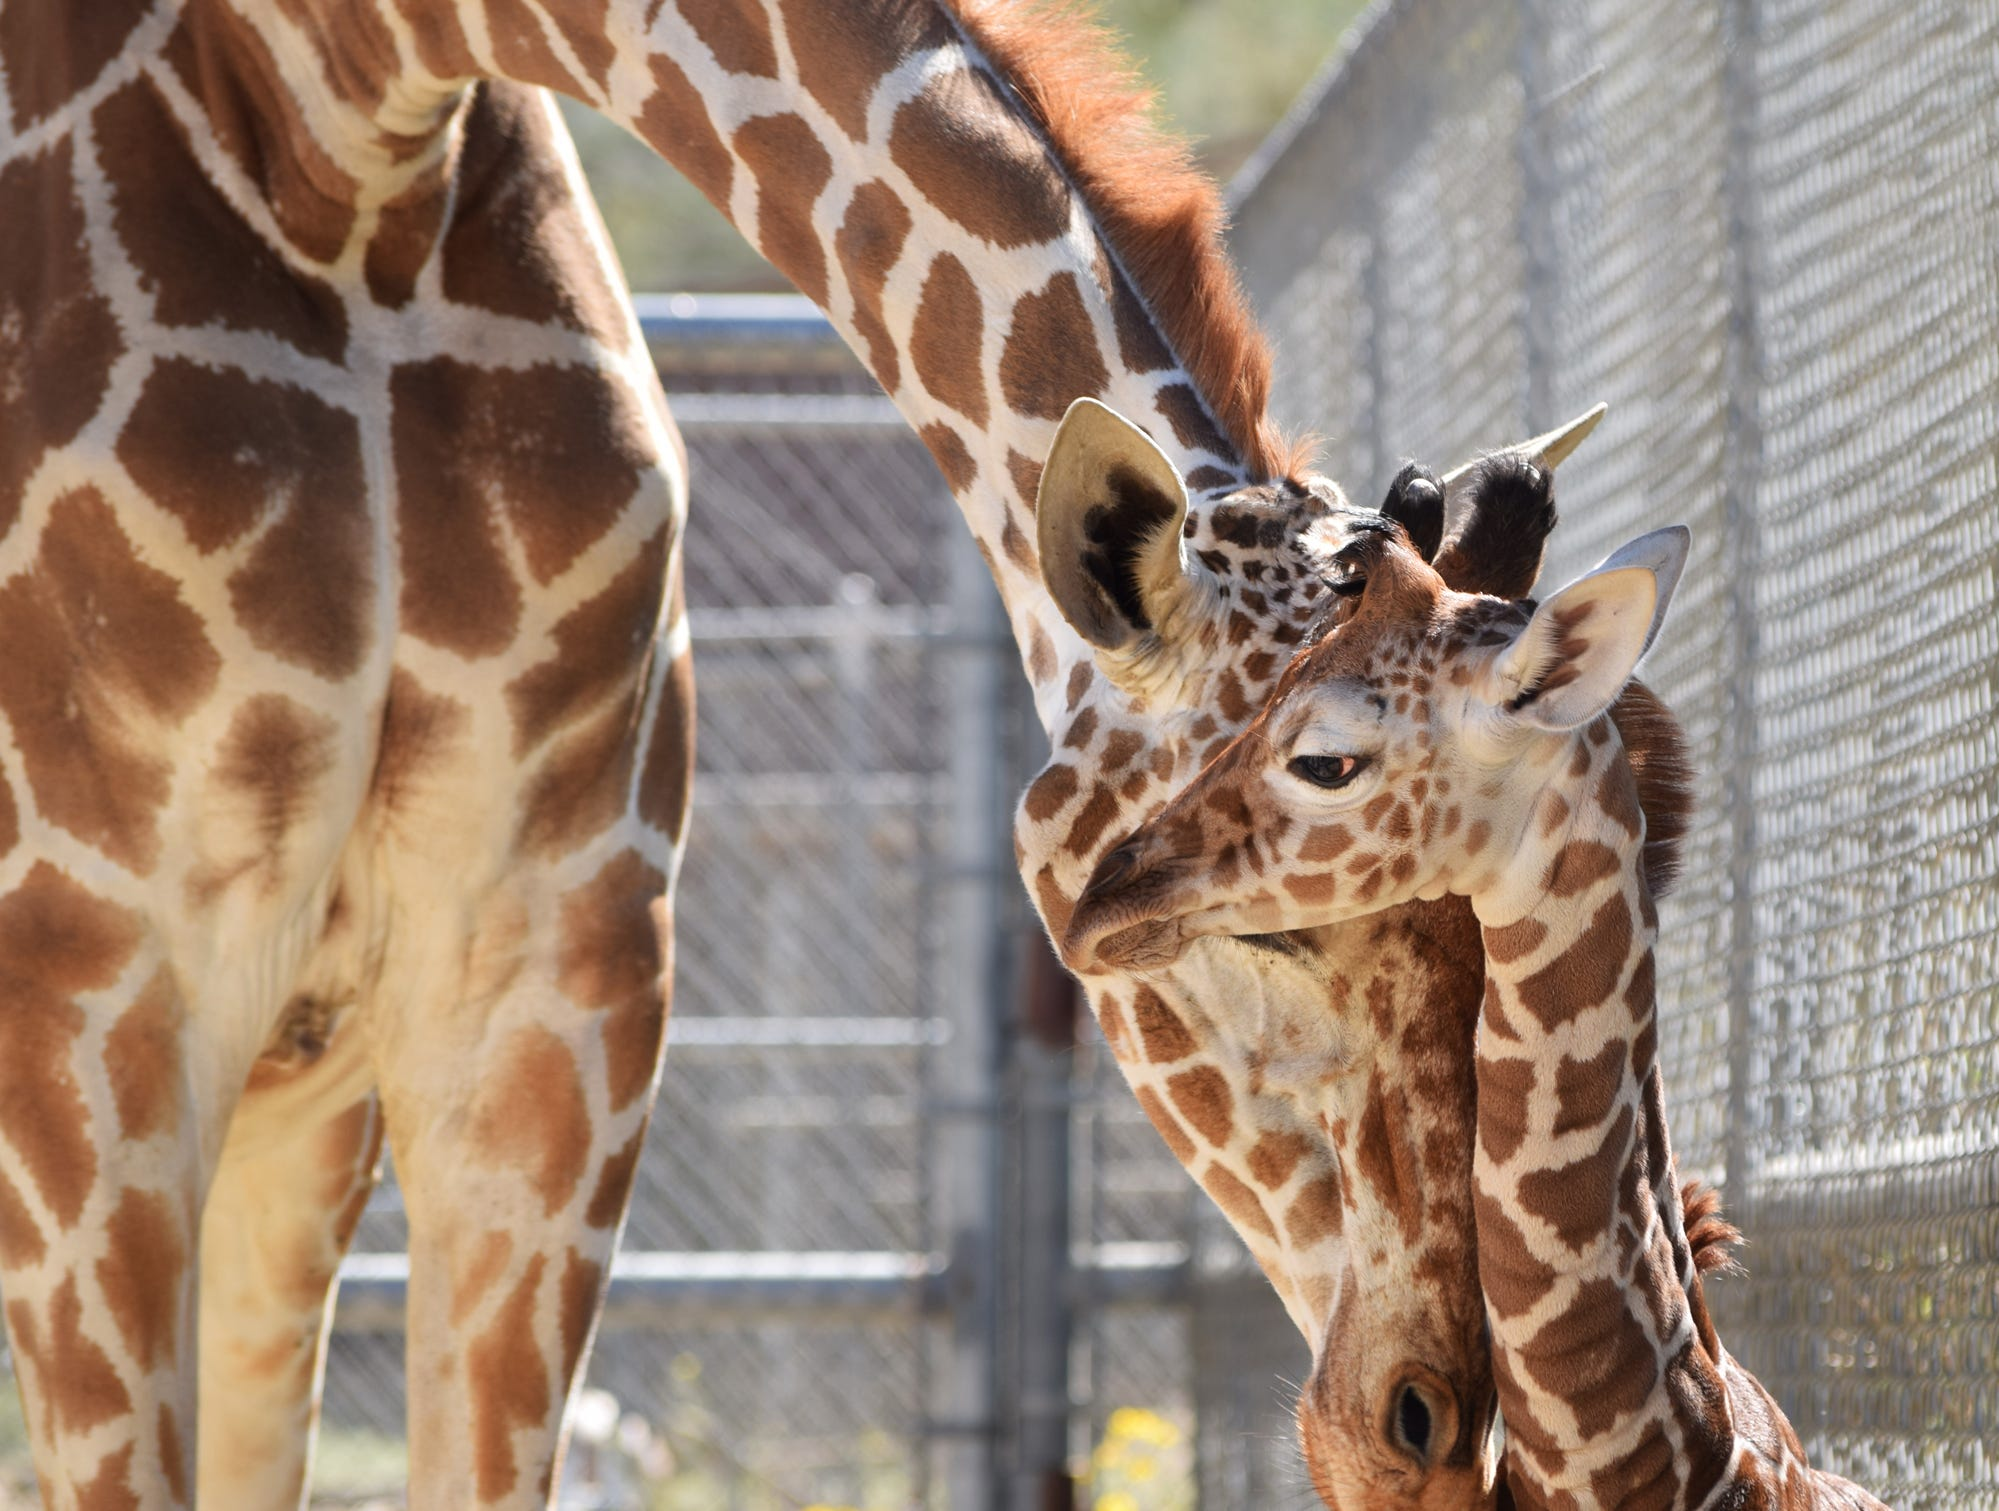 Dadisi with her latest offspring, a girl, born March 20, 2019, at The Living Desert. The calf was born weighing just under 150 pounds and standing 6-foot-1.